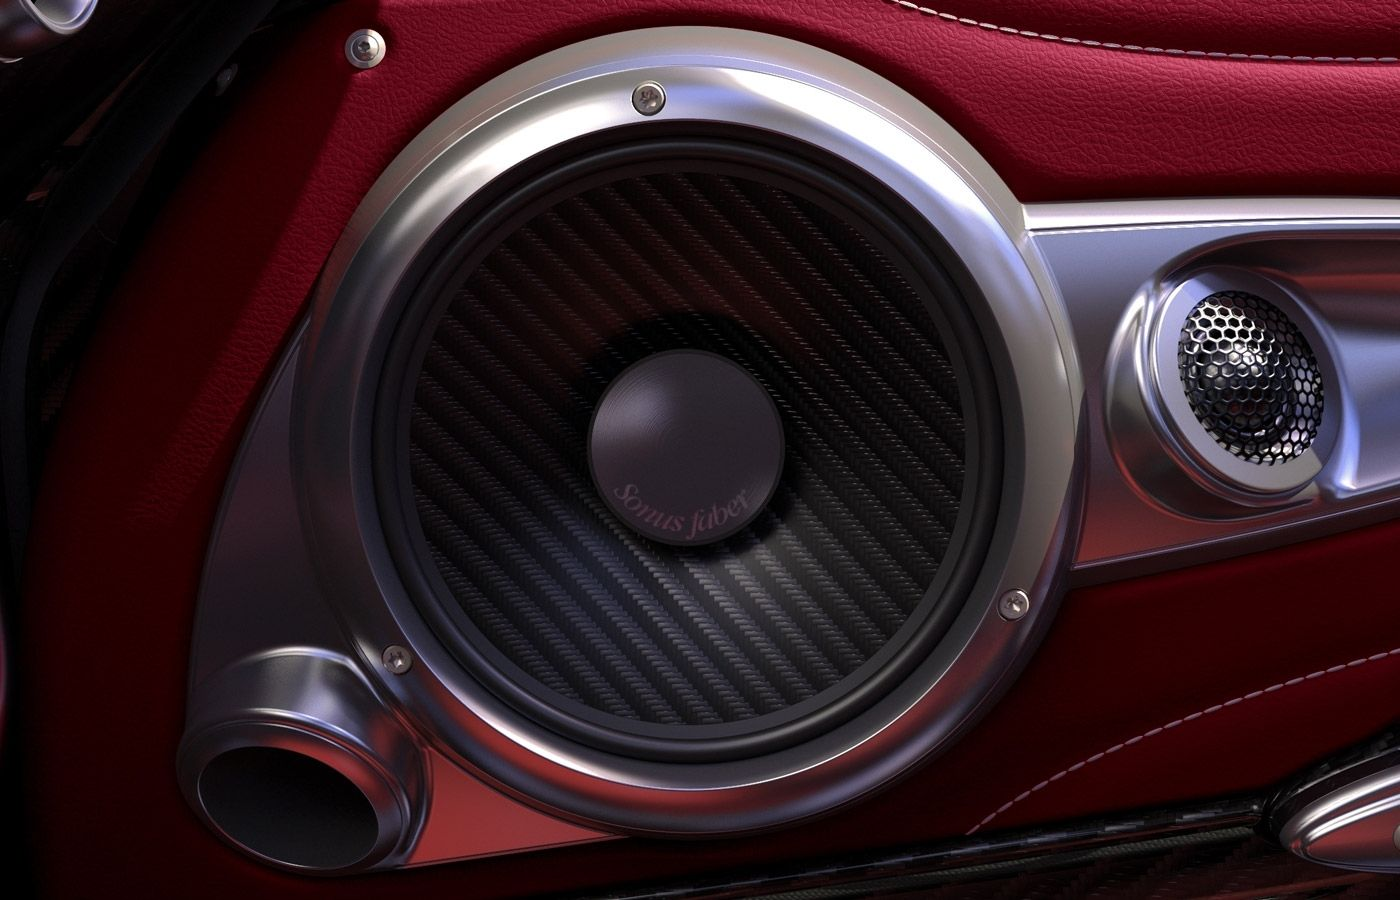 High End Car Speakers By Sonus Faber Complete Car Audio System For The Pagani Huayra Car Audio Systems Car Audio Custom Car Audio